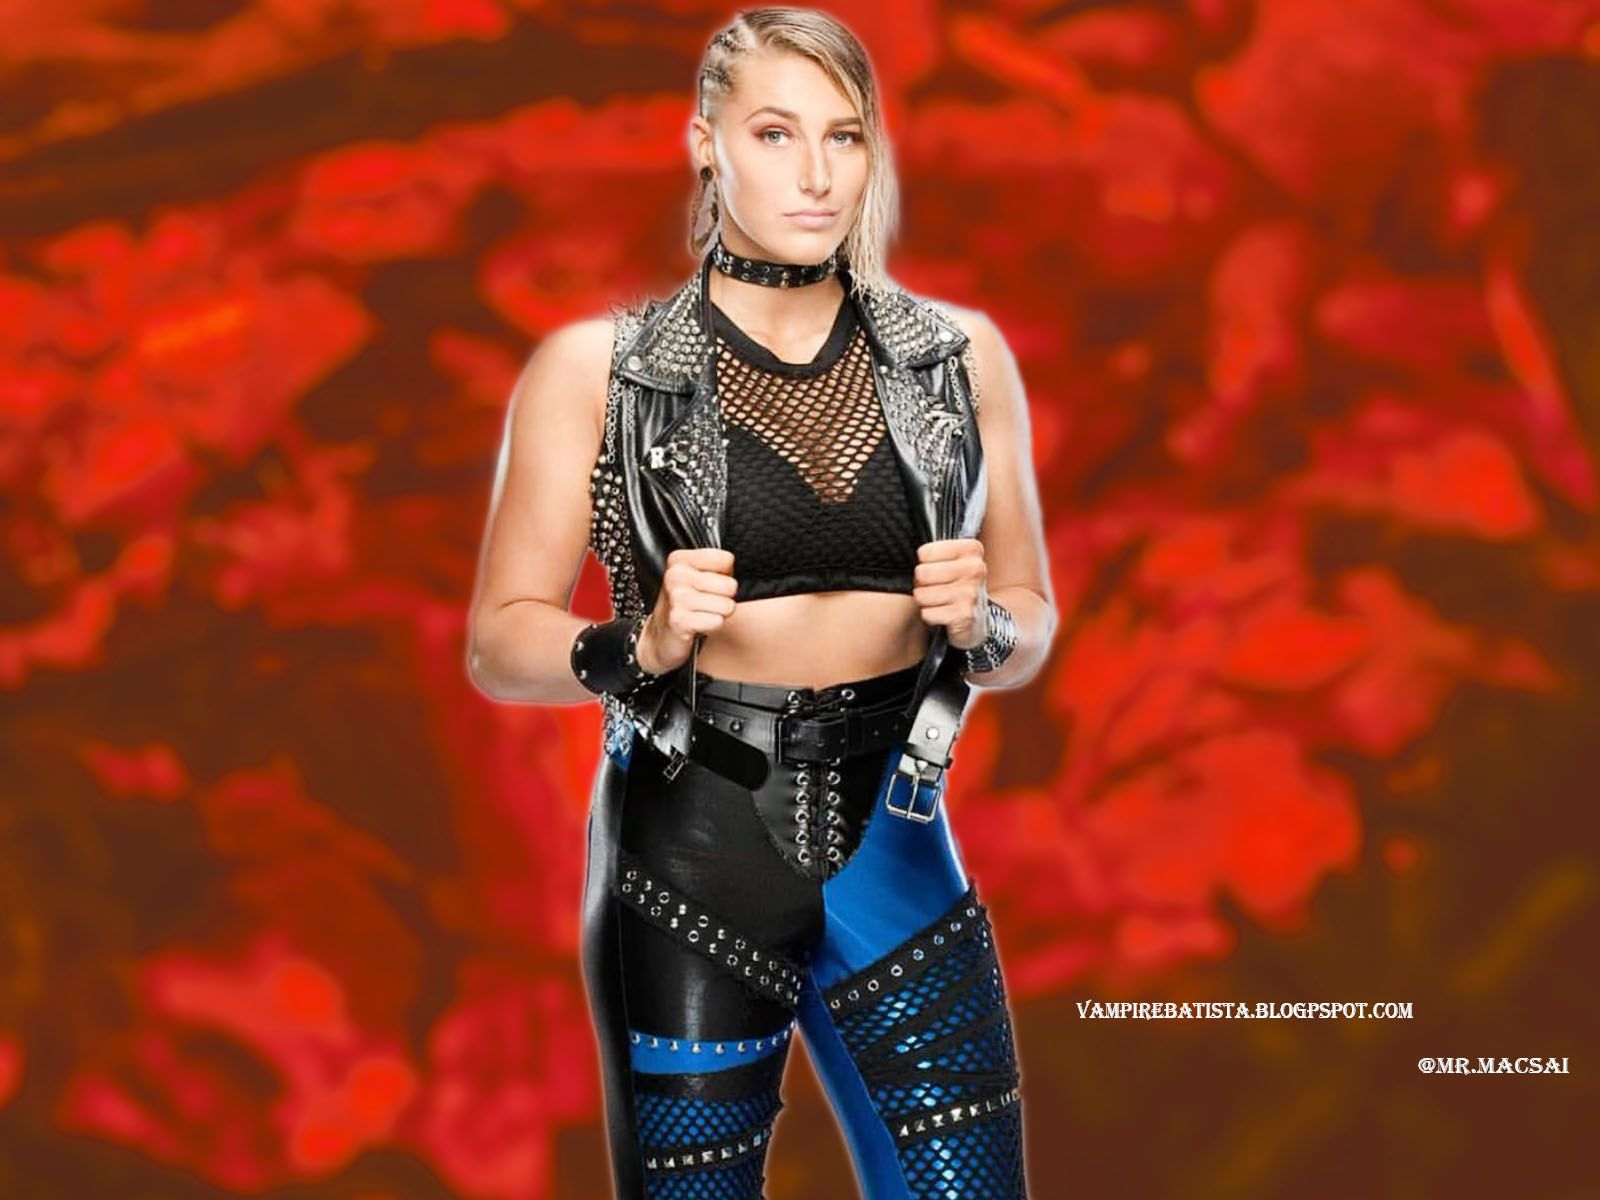 Wwe Mae Young Classic Nxt Uk Rhea Ripley Wwe Womens Wwe Girls Wwe Female Wrestlers